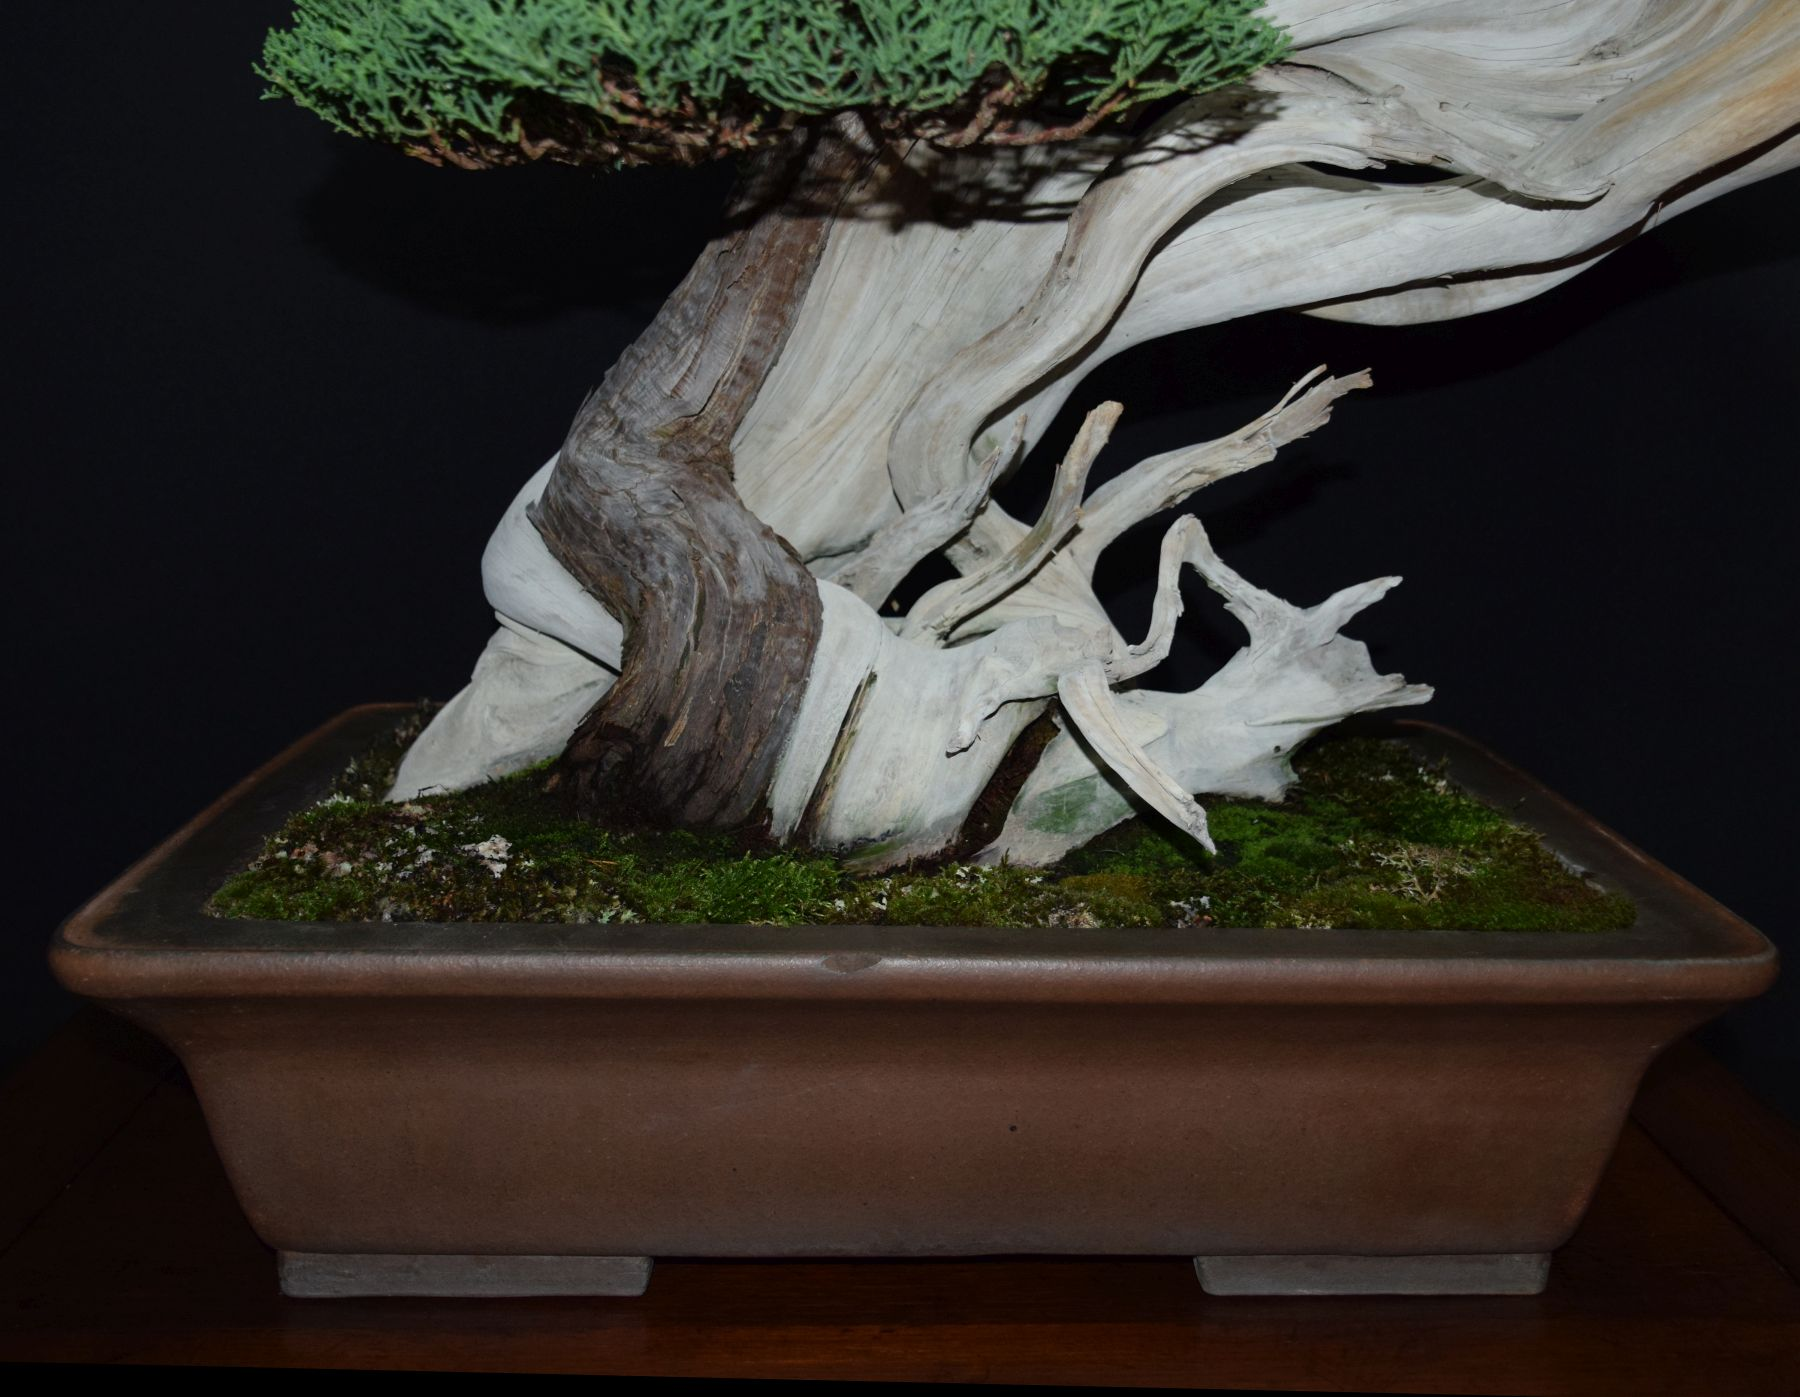 bonsai-museum-luis-vallejo-032